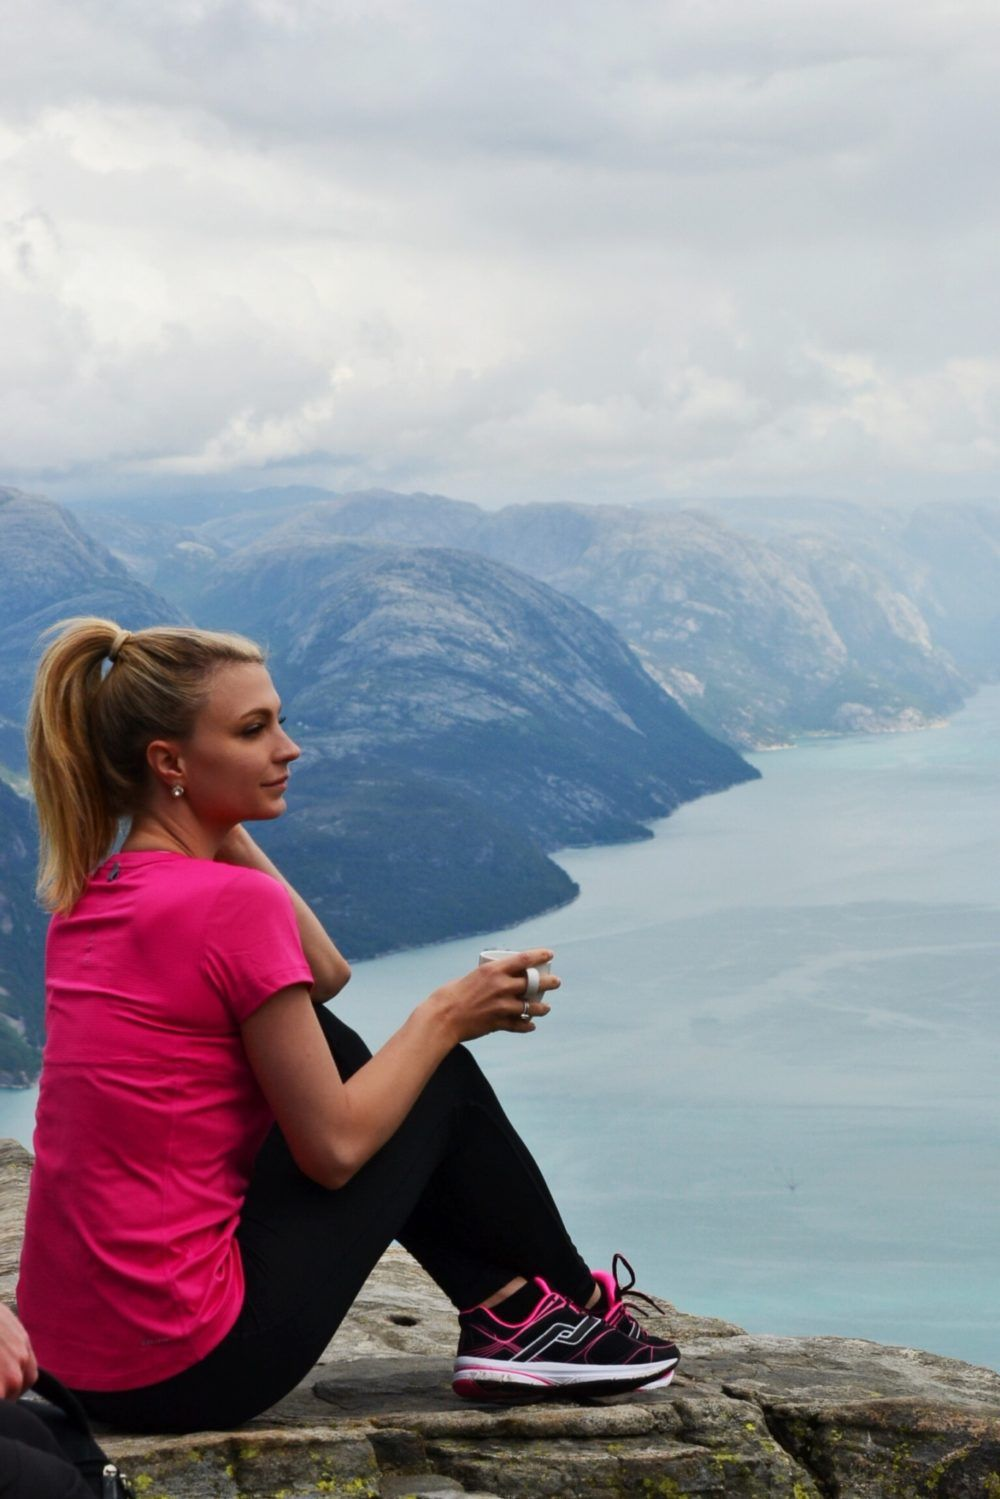 Follow me on my trip to the west of Norway to hike the world famous Pulpit rock. Come with me as we take in all the vie… | Living in europe. My ...